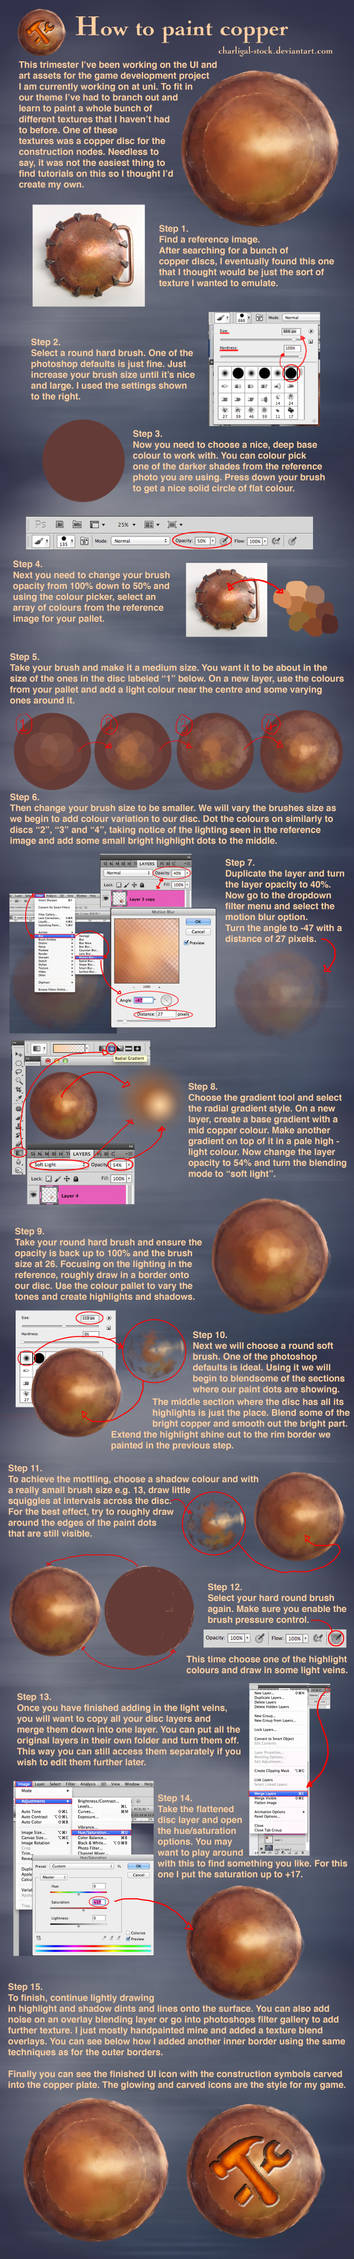 How To Paint Copper